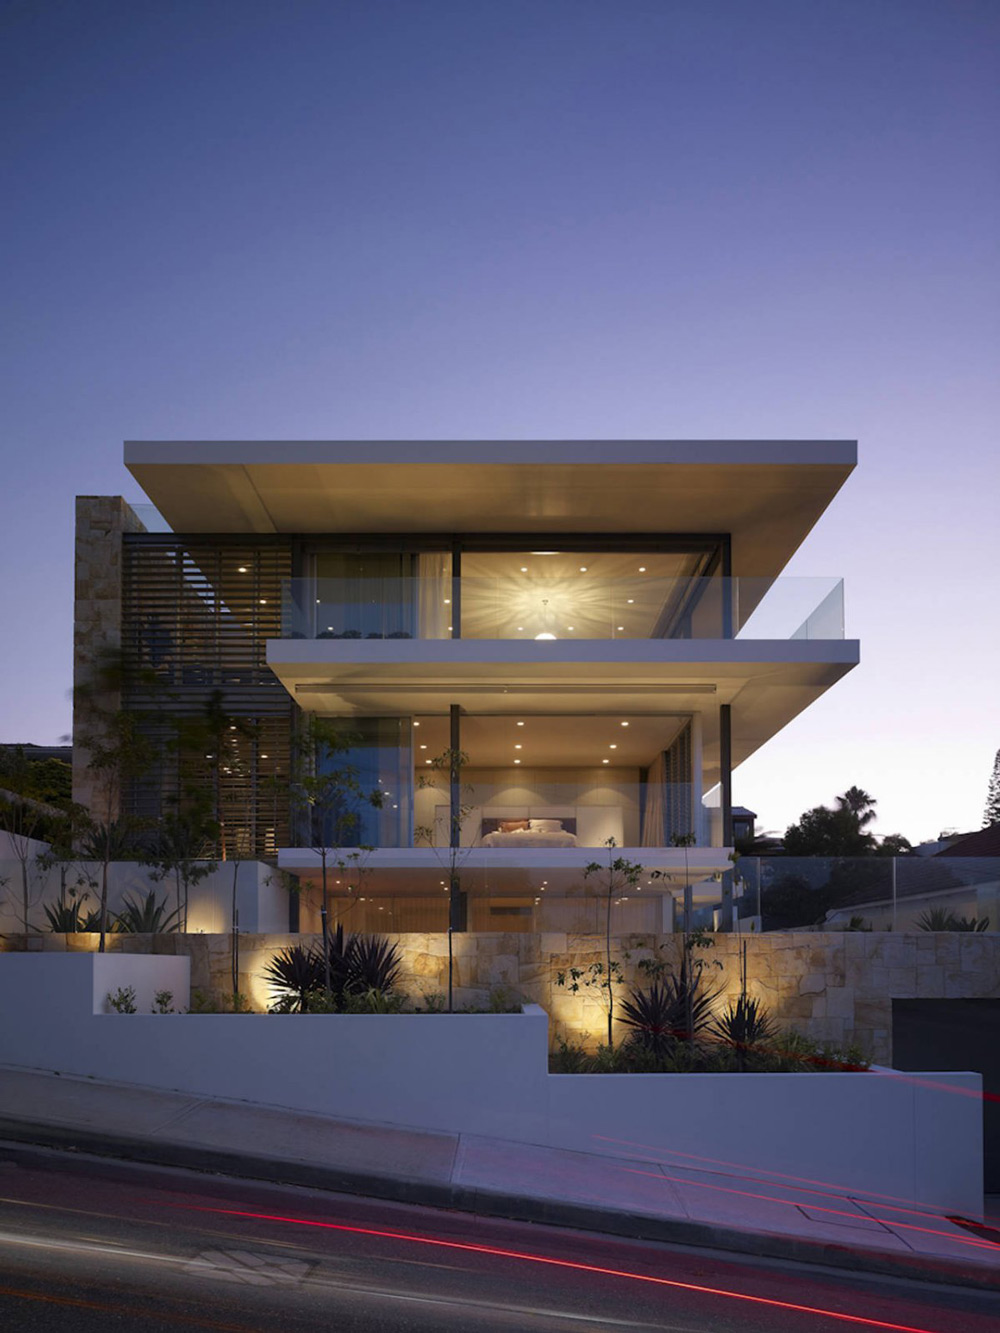 Vaucluse house in sydney australia by mpr design group for Luxury home architects